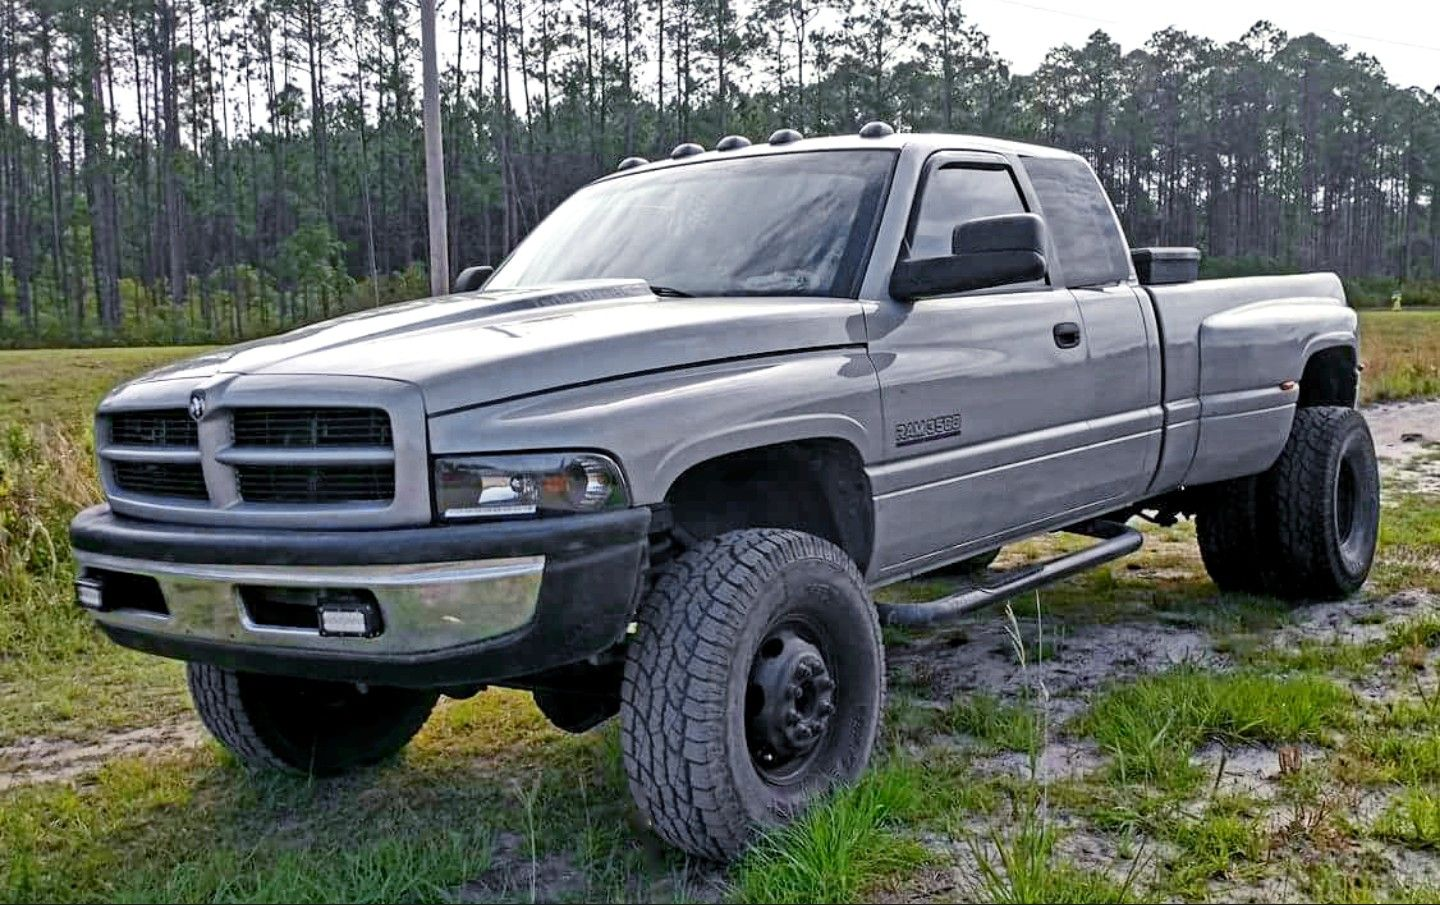 2002 dodge cummins 3500ram dually 4x4 dodge cummins dodge trucks cummins trucks 2002 dodge cummins 3500ram dually 4x4